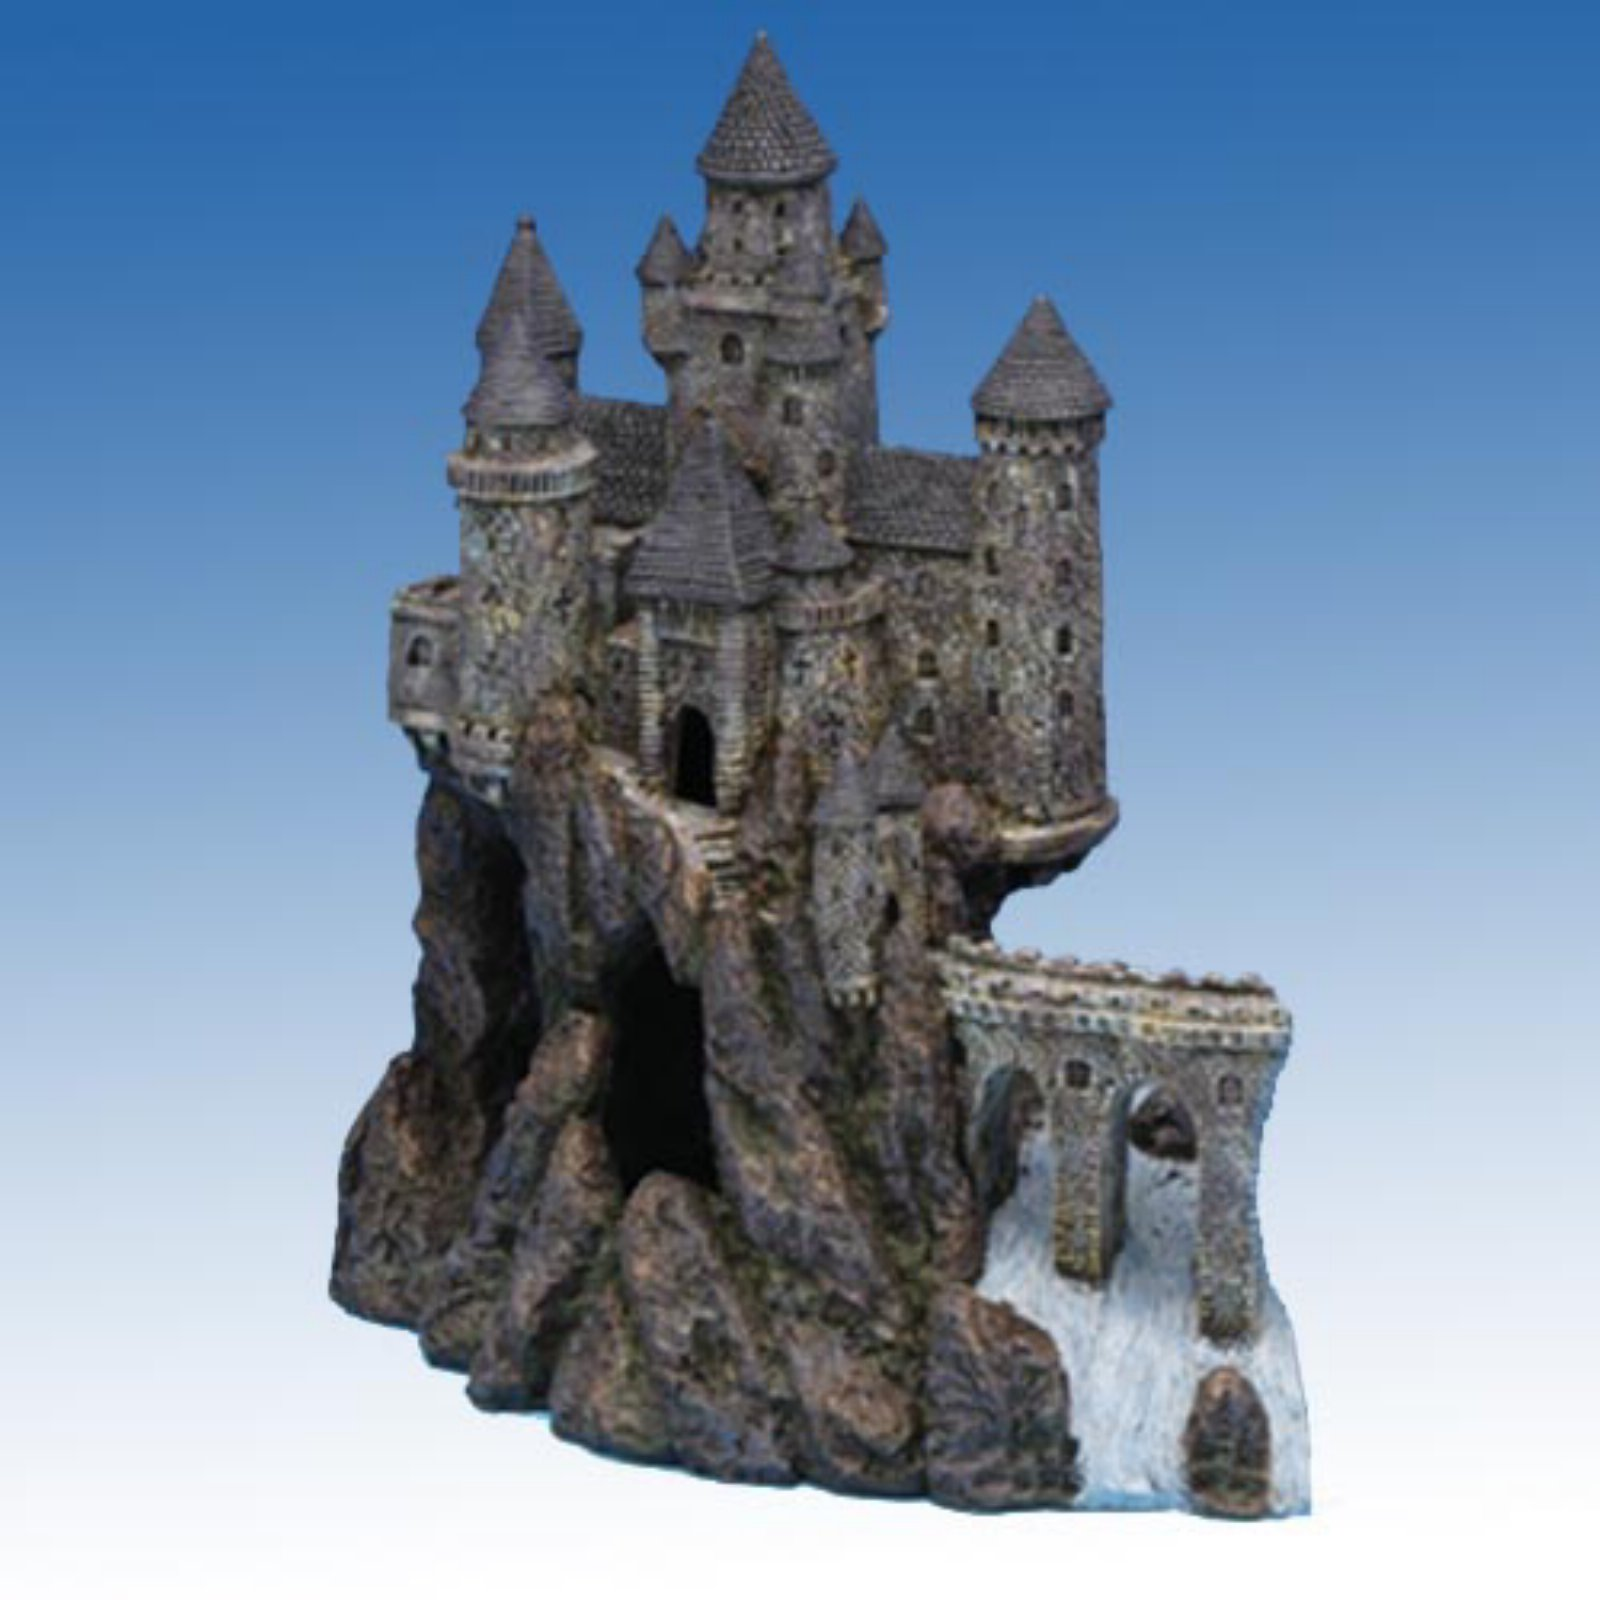 Penn Plax Age-of-Magic Magical Castle, Super Size, Section A